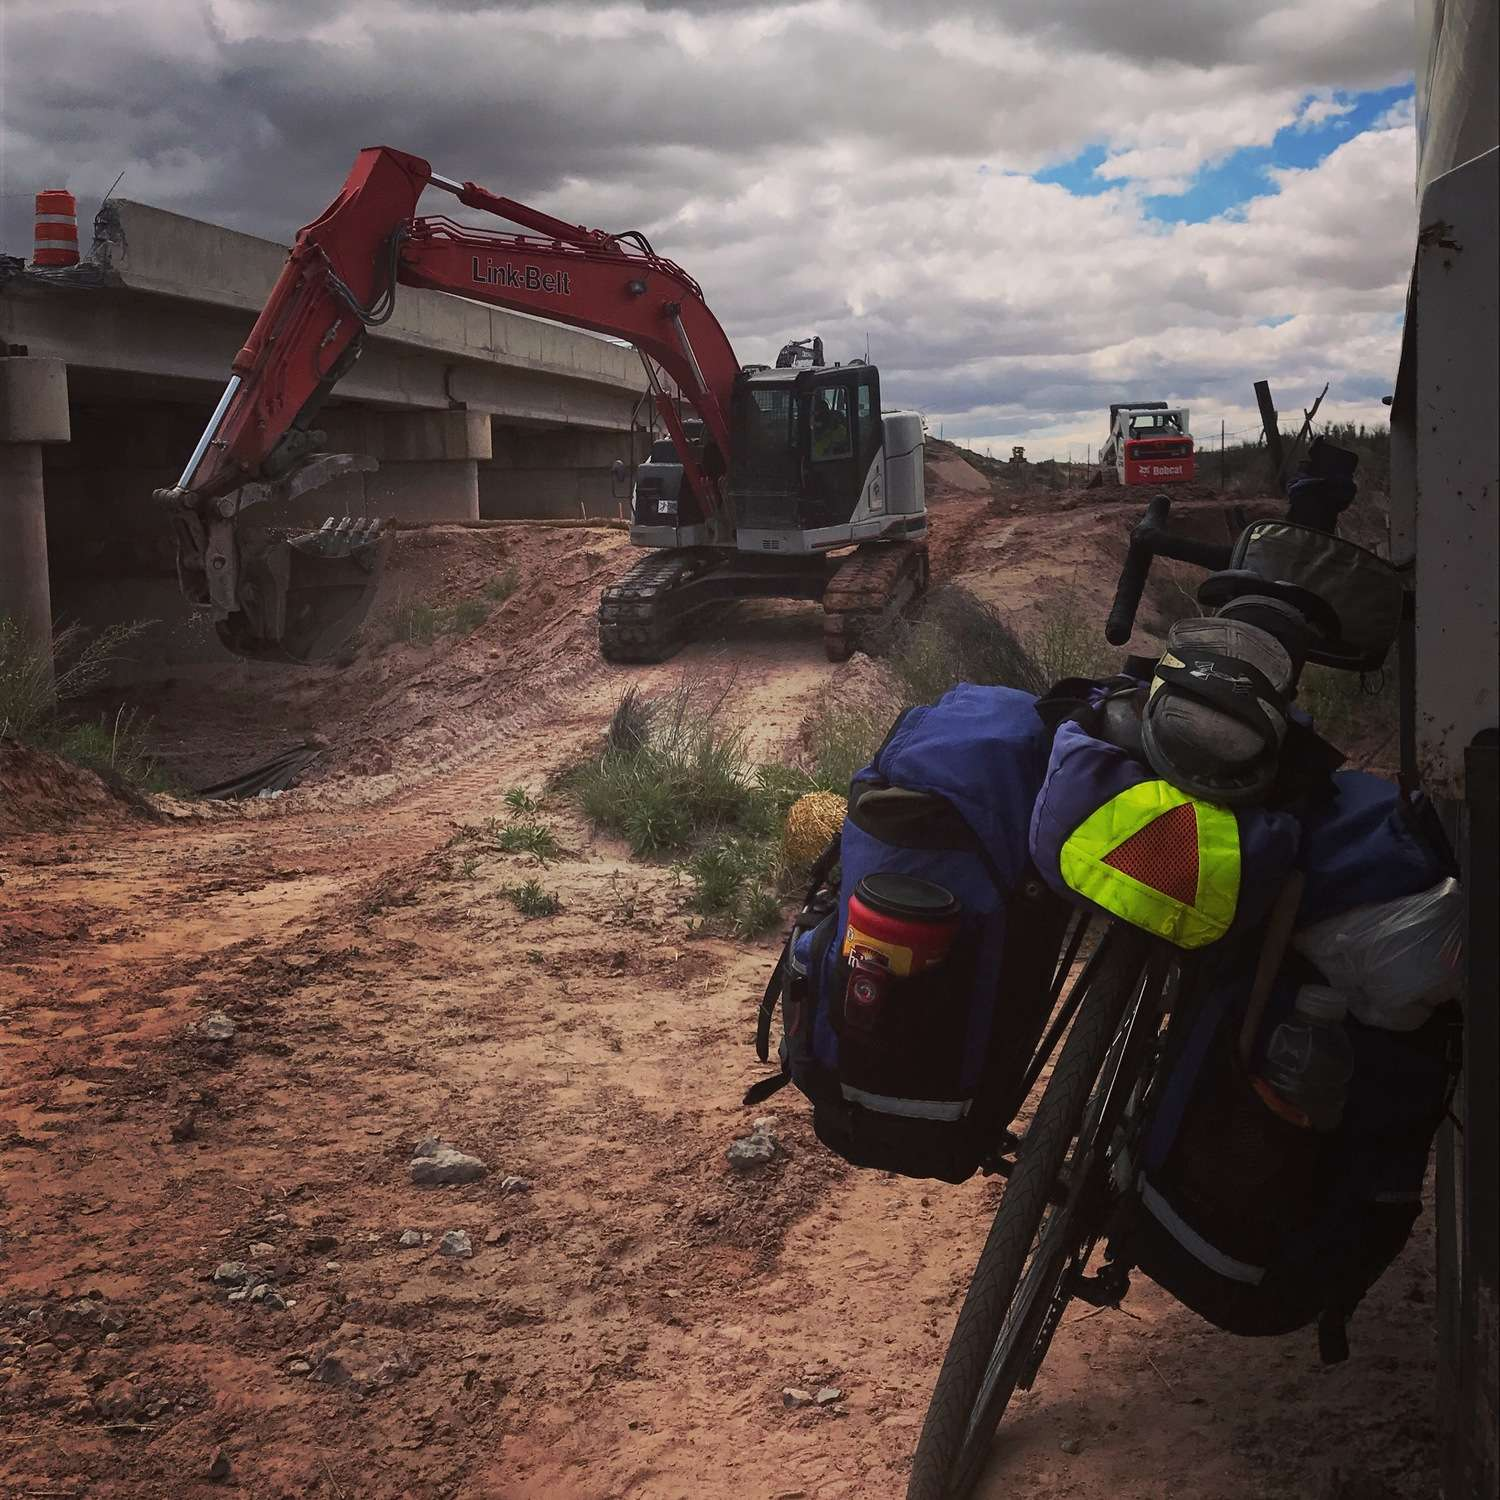 Bike touring may take you places you wouldn't otherwise visit in a car where visibility is even more important, like this construction zone.   Photo courtesy Brandon Lampley.